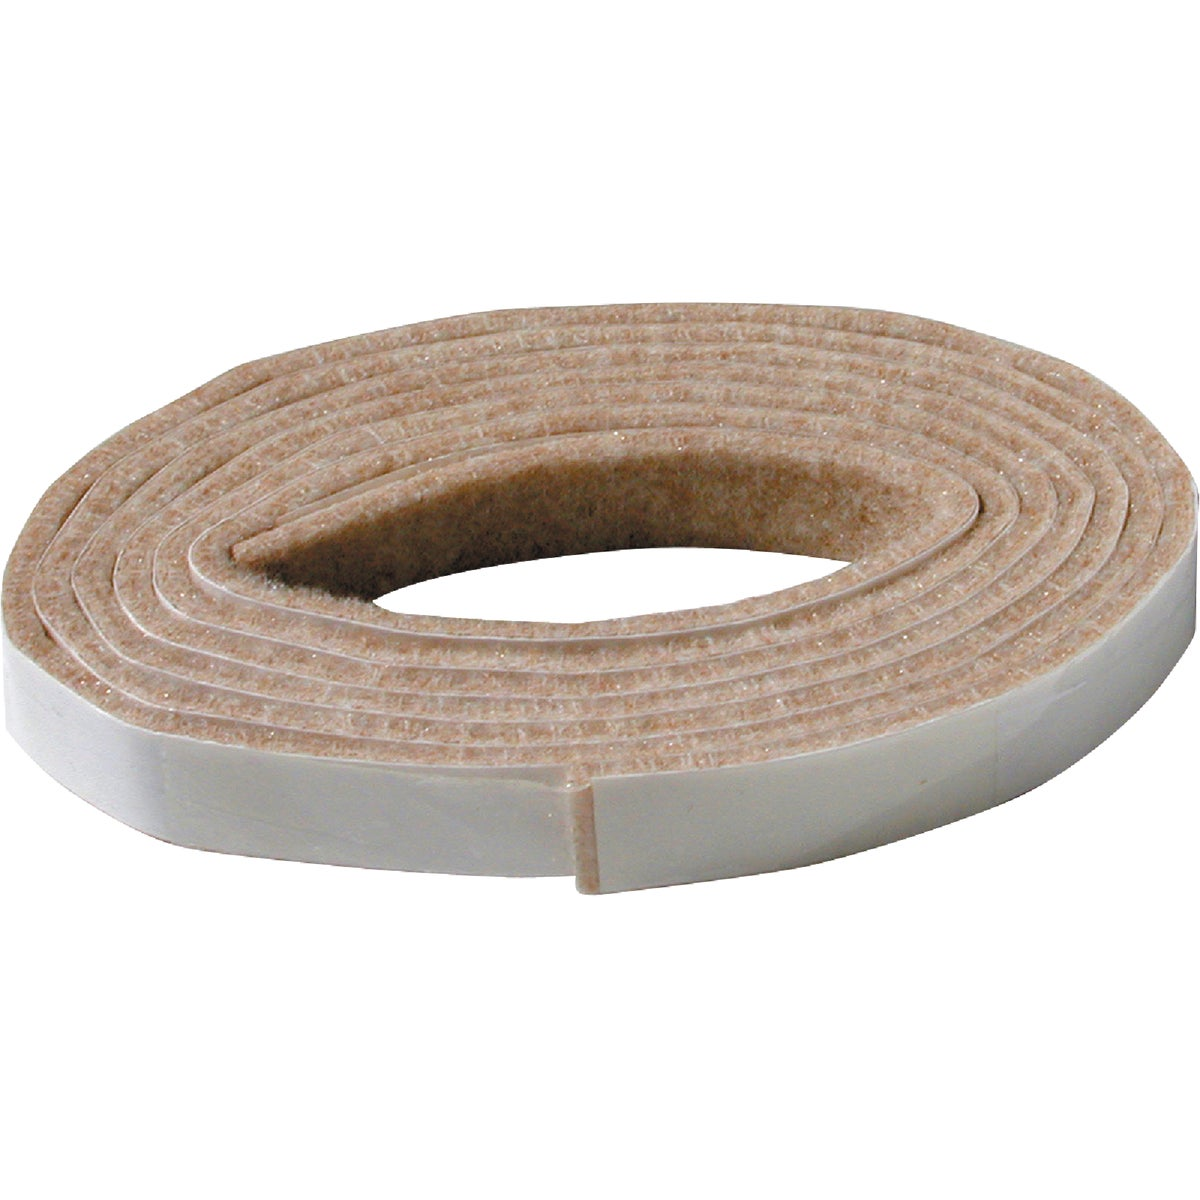 "1/2X58"" ROLL FELT STRIP - 239313 by Shepherd Hardware"